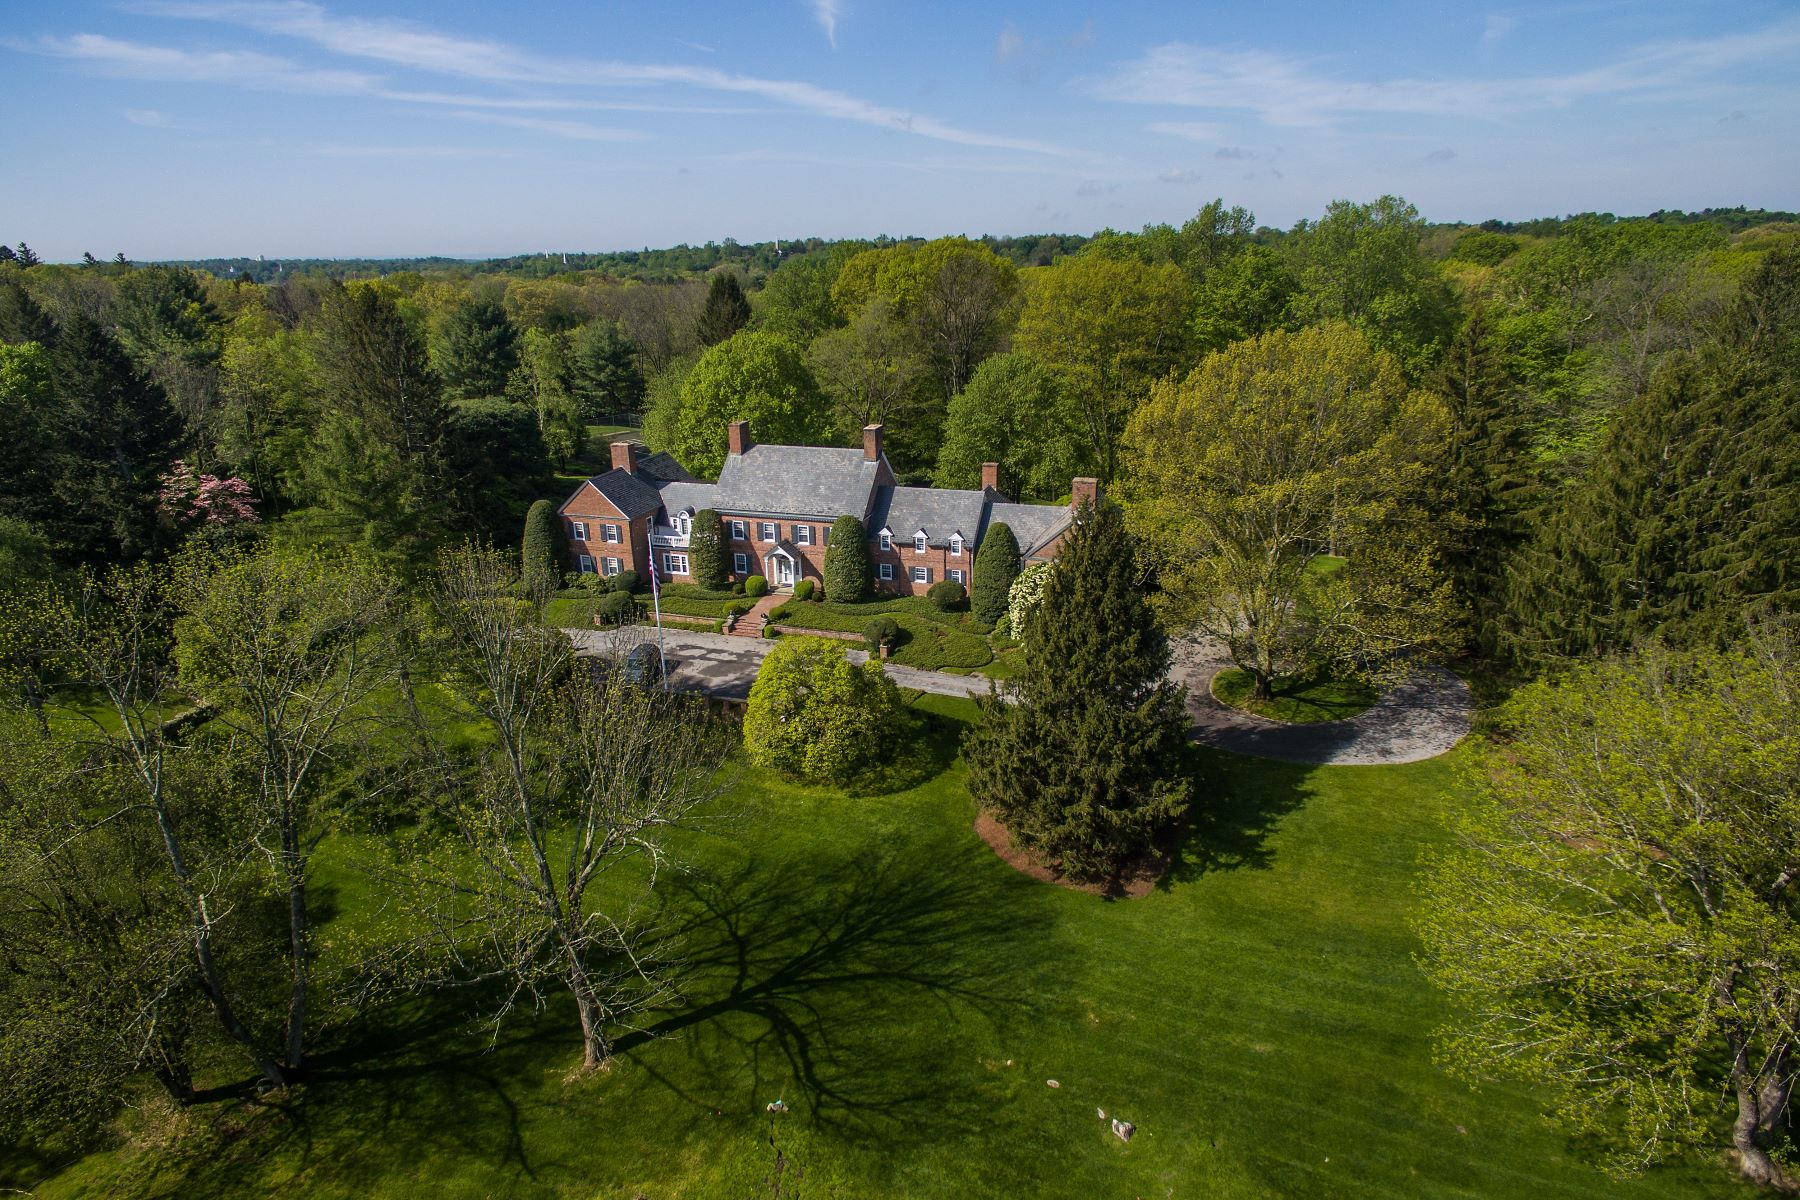 Single Family Home for Sale at Rosebrook 174 Rosebrook Road New Canaan, Connecticut 06840 United States